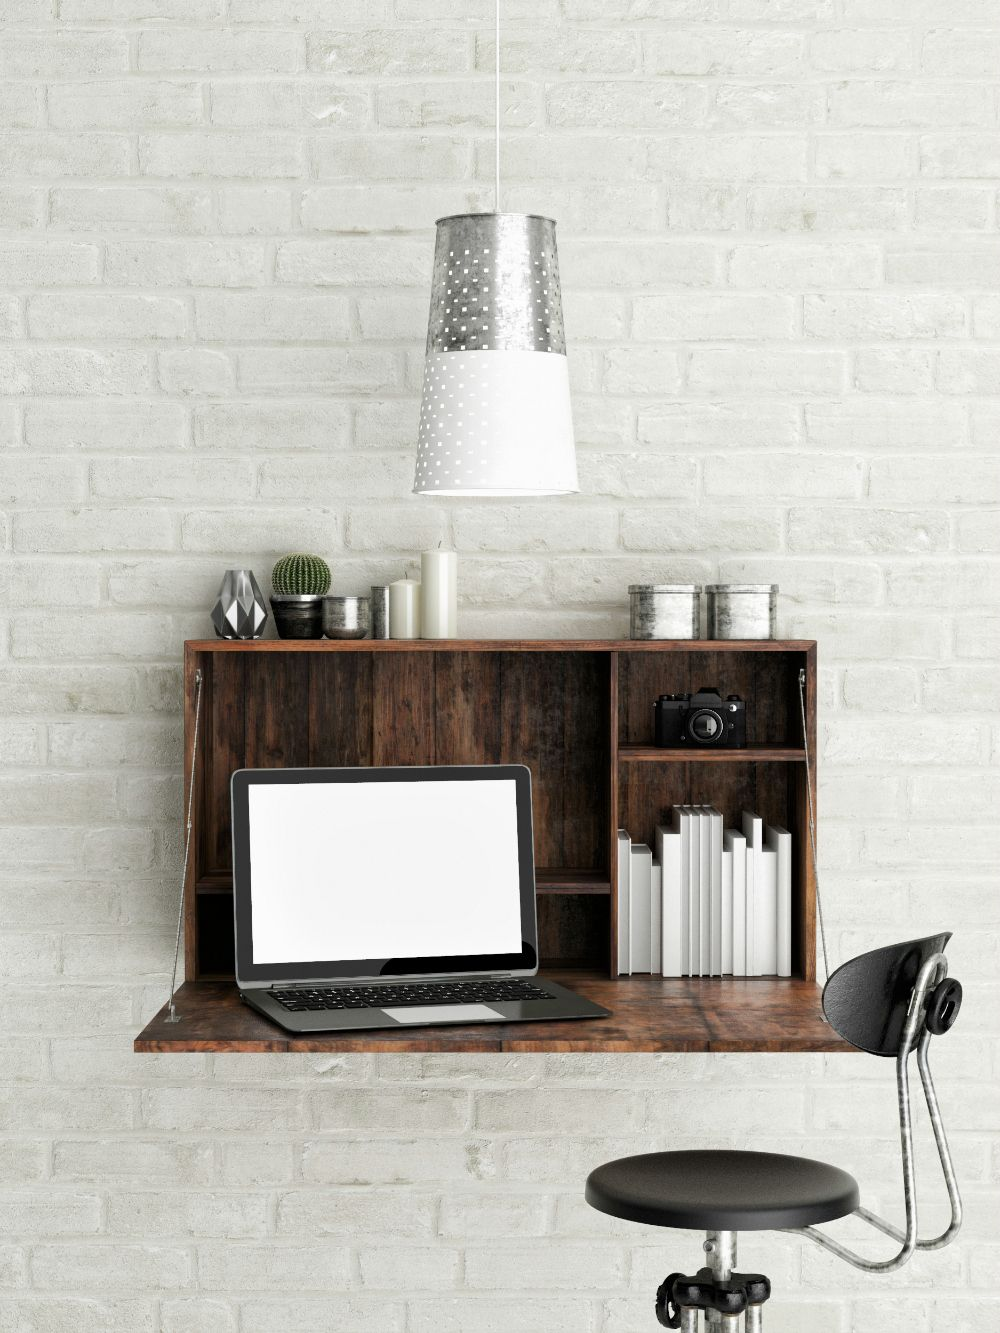 Wall Mounted Desks And Other Space Savers Home Office Design